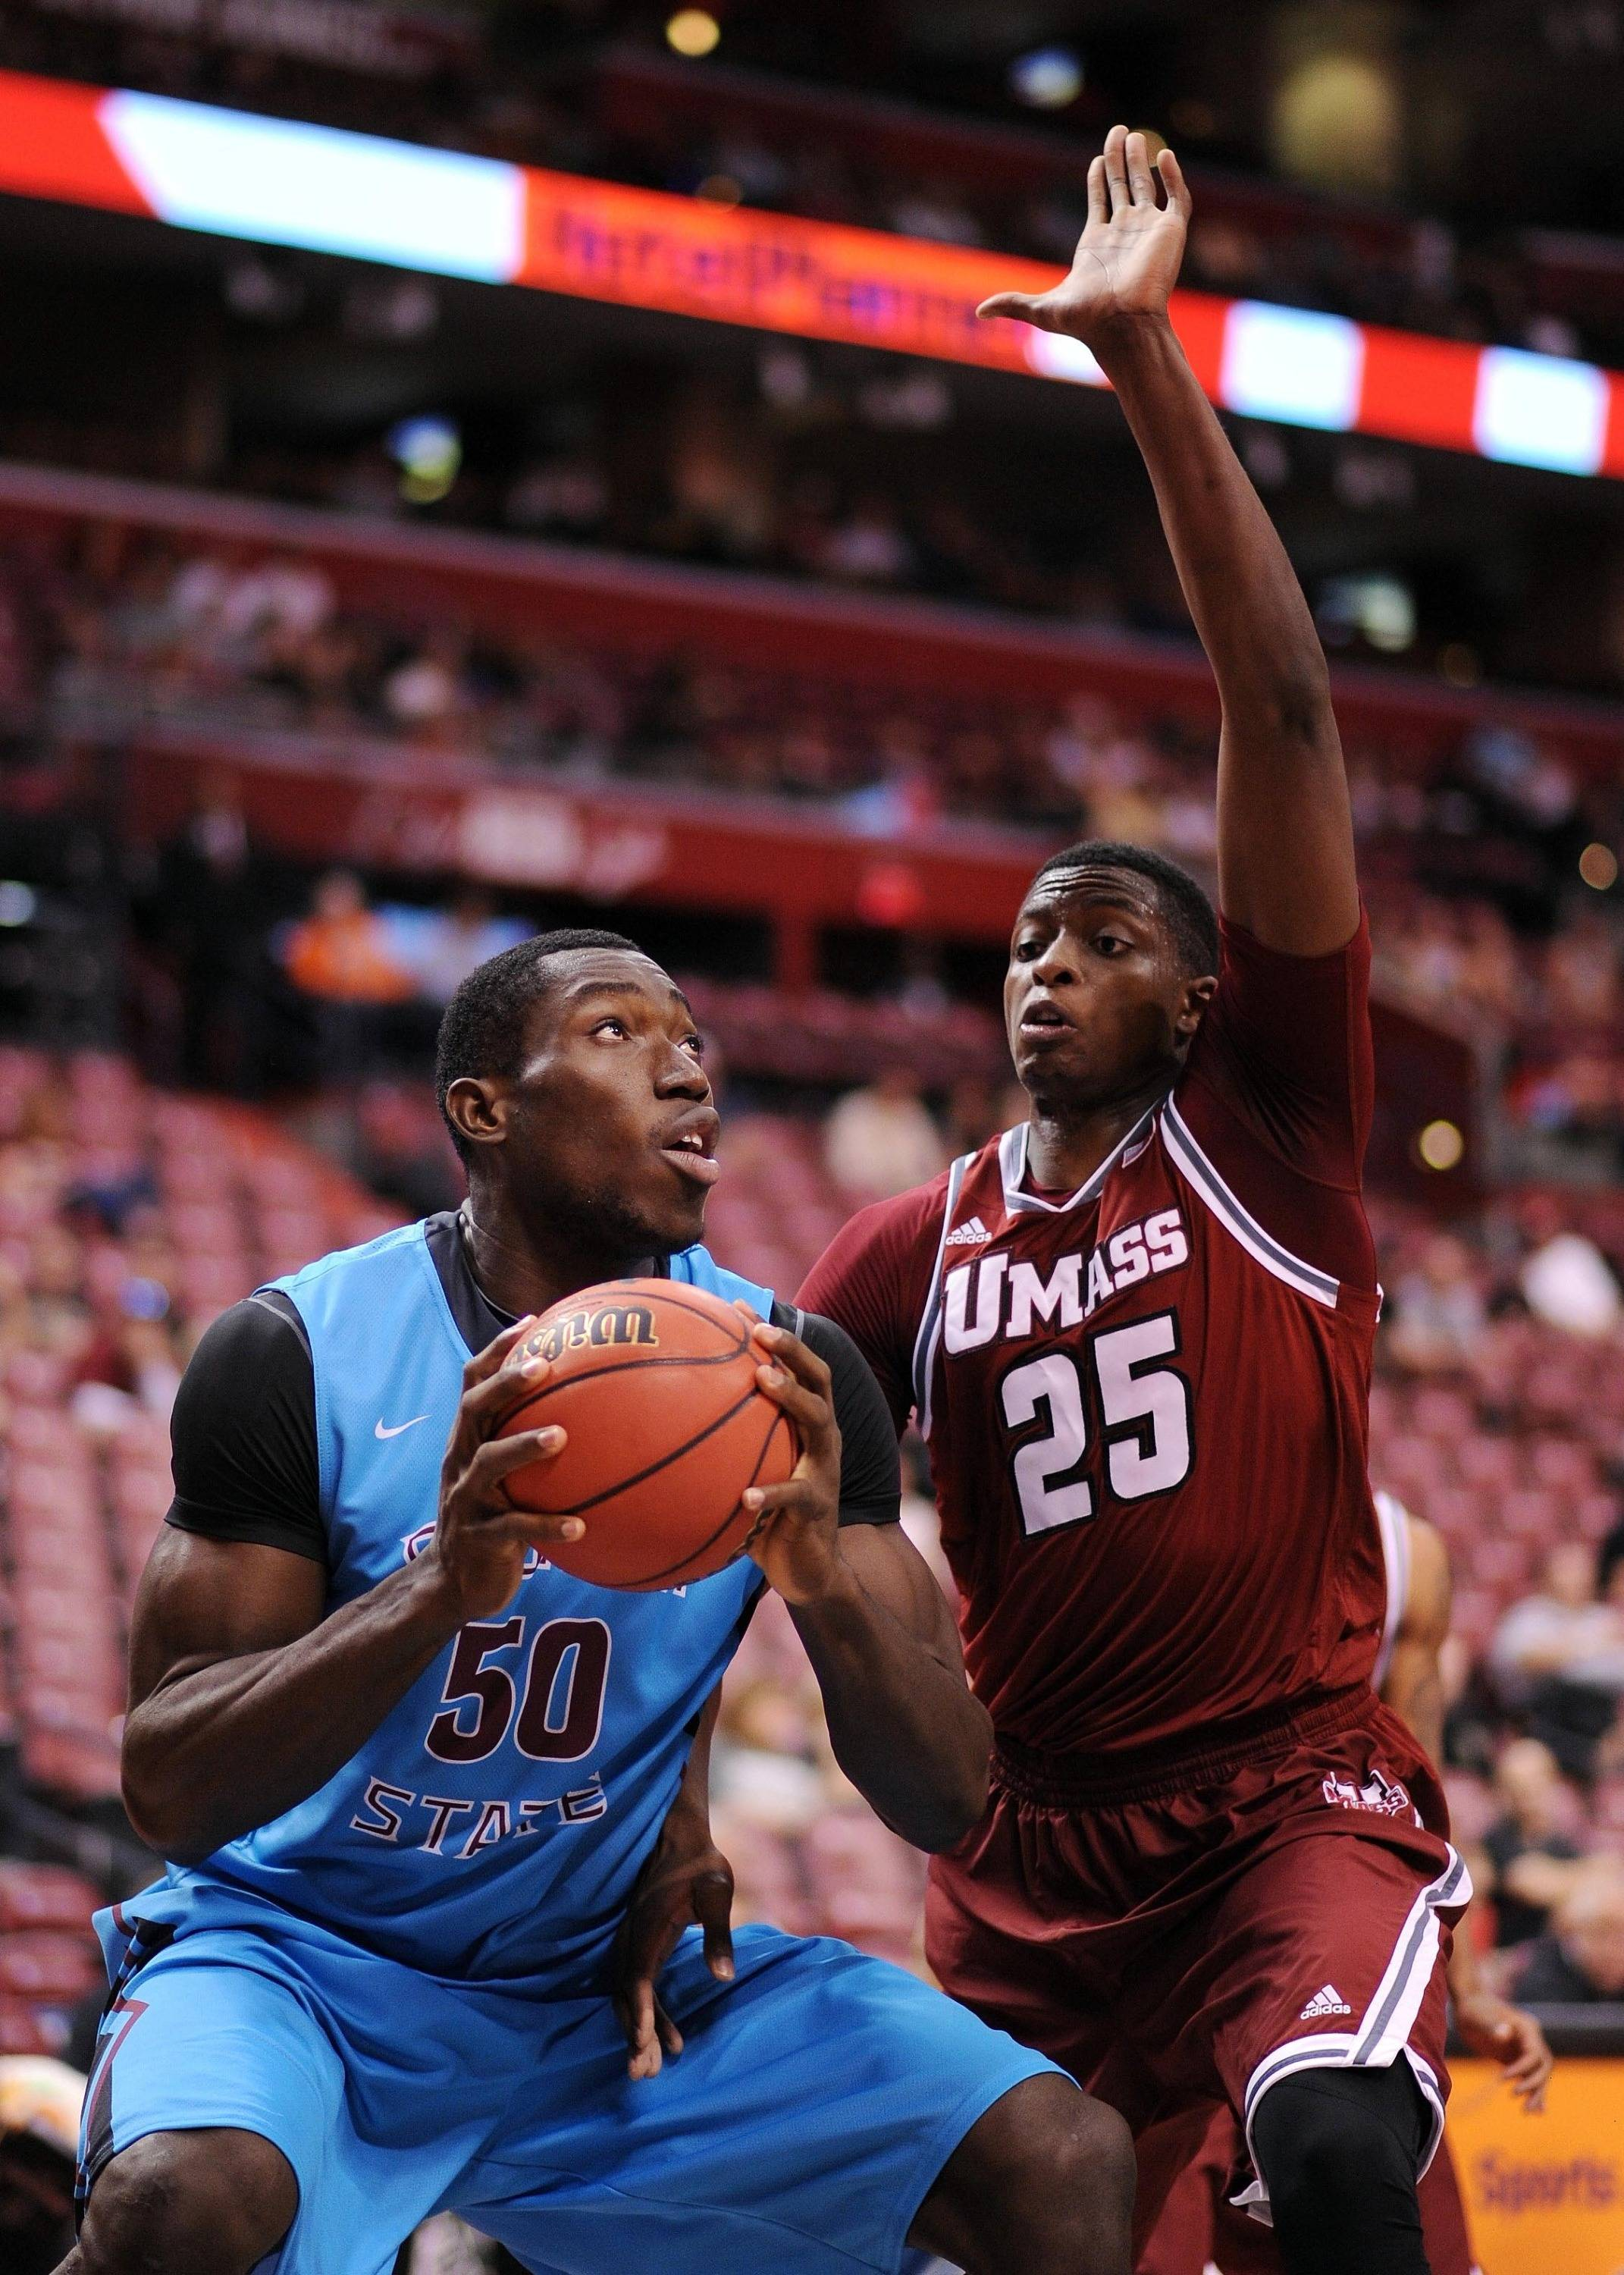 Dec 21, 2013; Sunrise, FL, USA; Florida State Seminoles center Michael Ojo (50) is pressured by Massachusetts Minutemen center Candy Lalanne (25) during the first half at BB&T Center. Mandatory Credit: Steve Mitchell-USA TODAY Sports